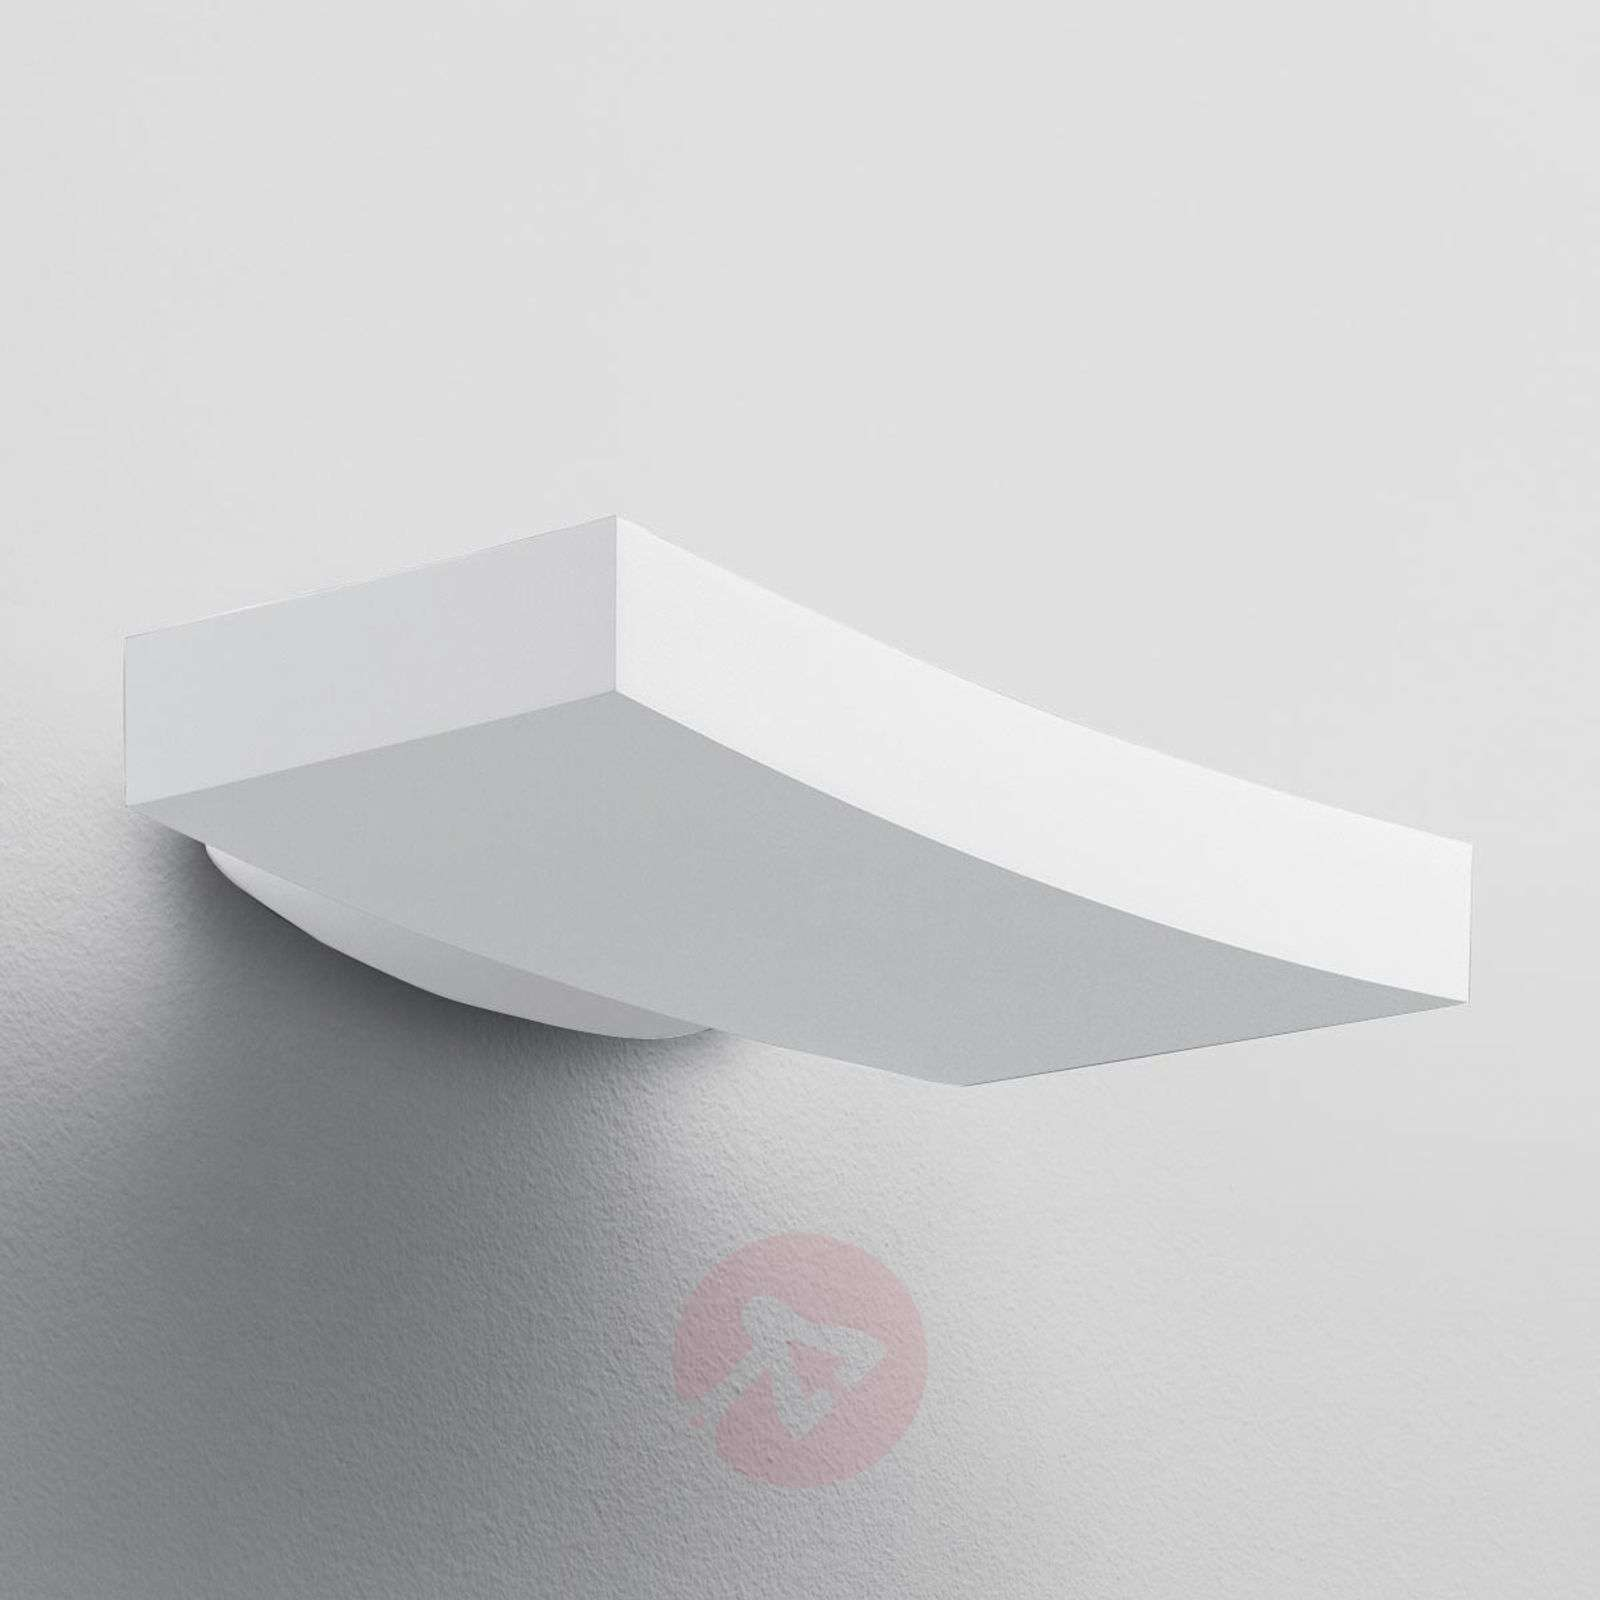 Designer LED wall light Surf 300, perfect form-1061003-02